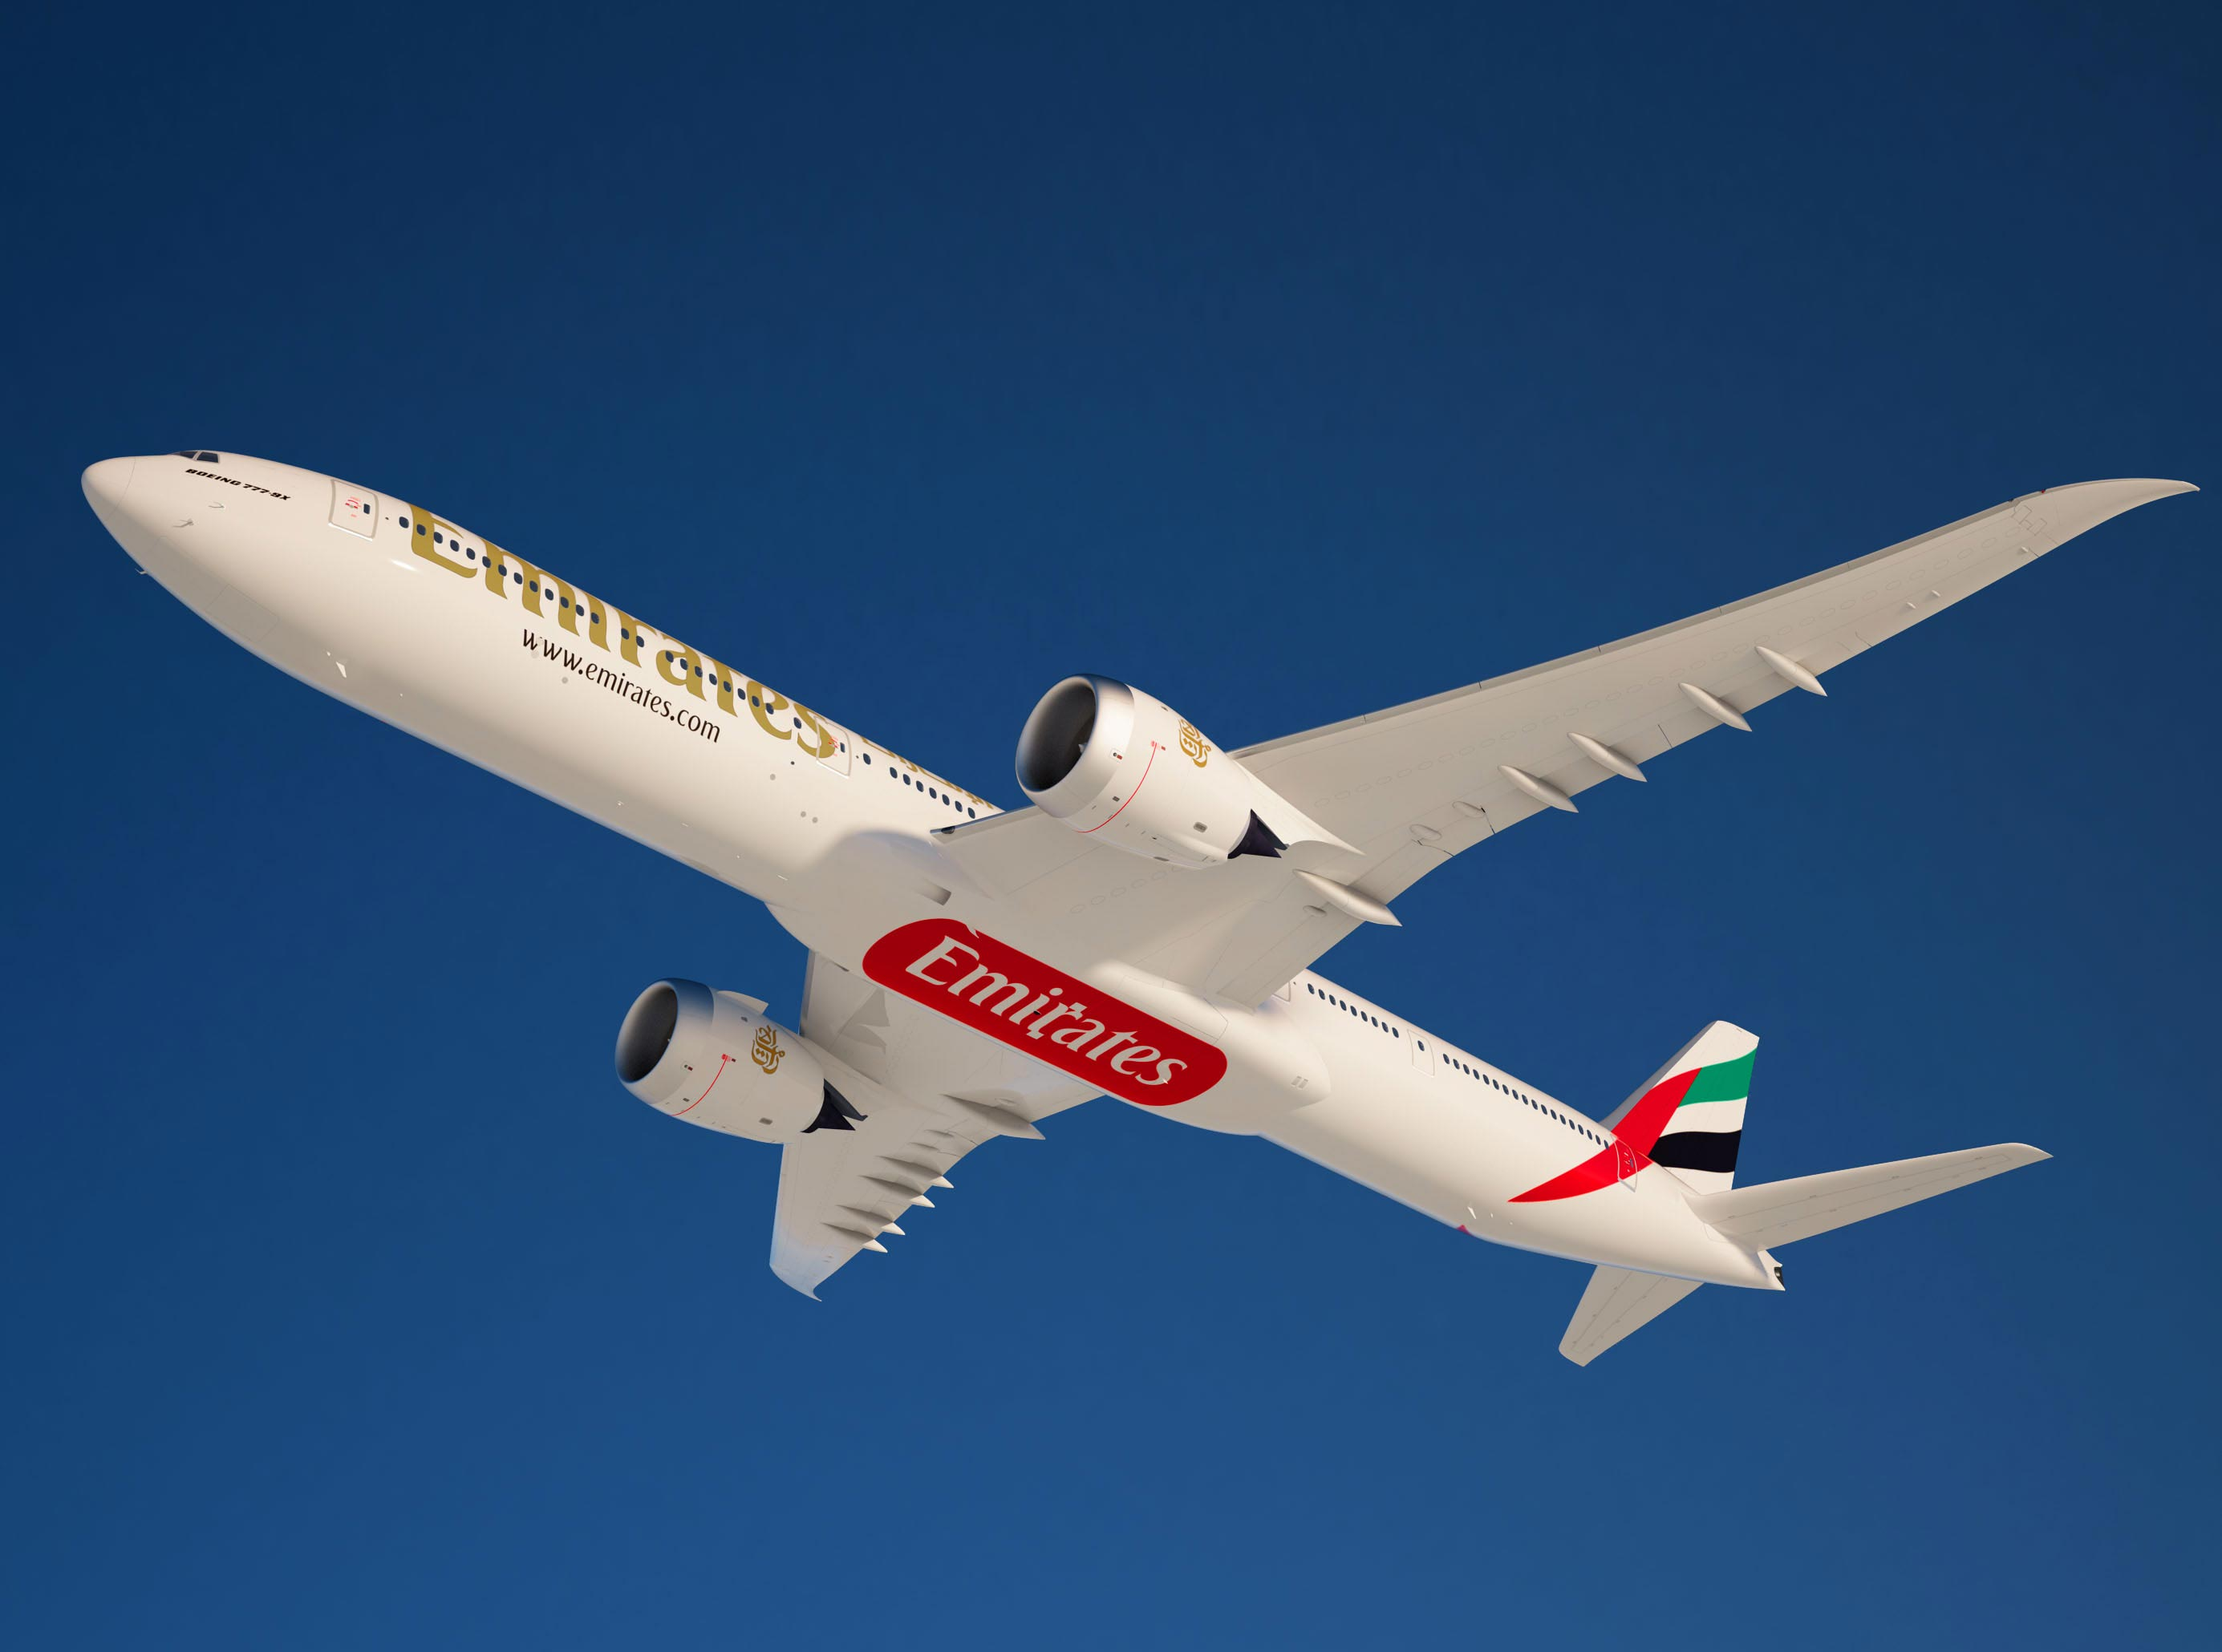 A rendering of Boeing's 777X in Emirates livery.